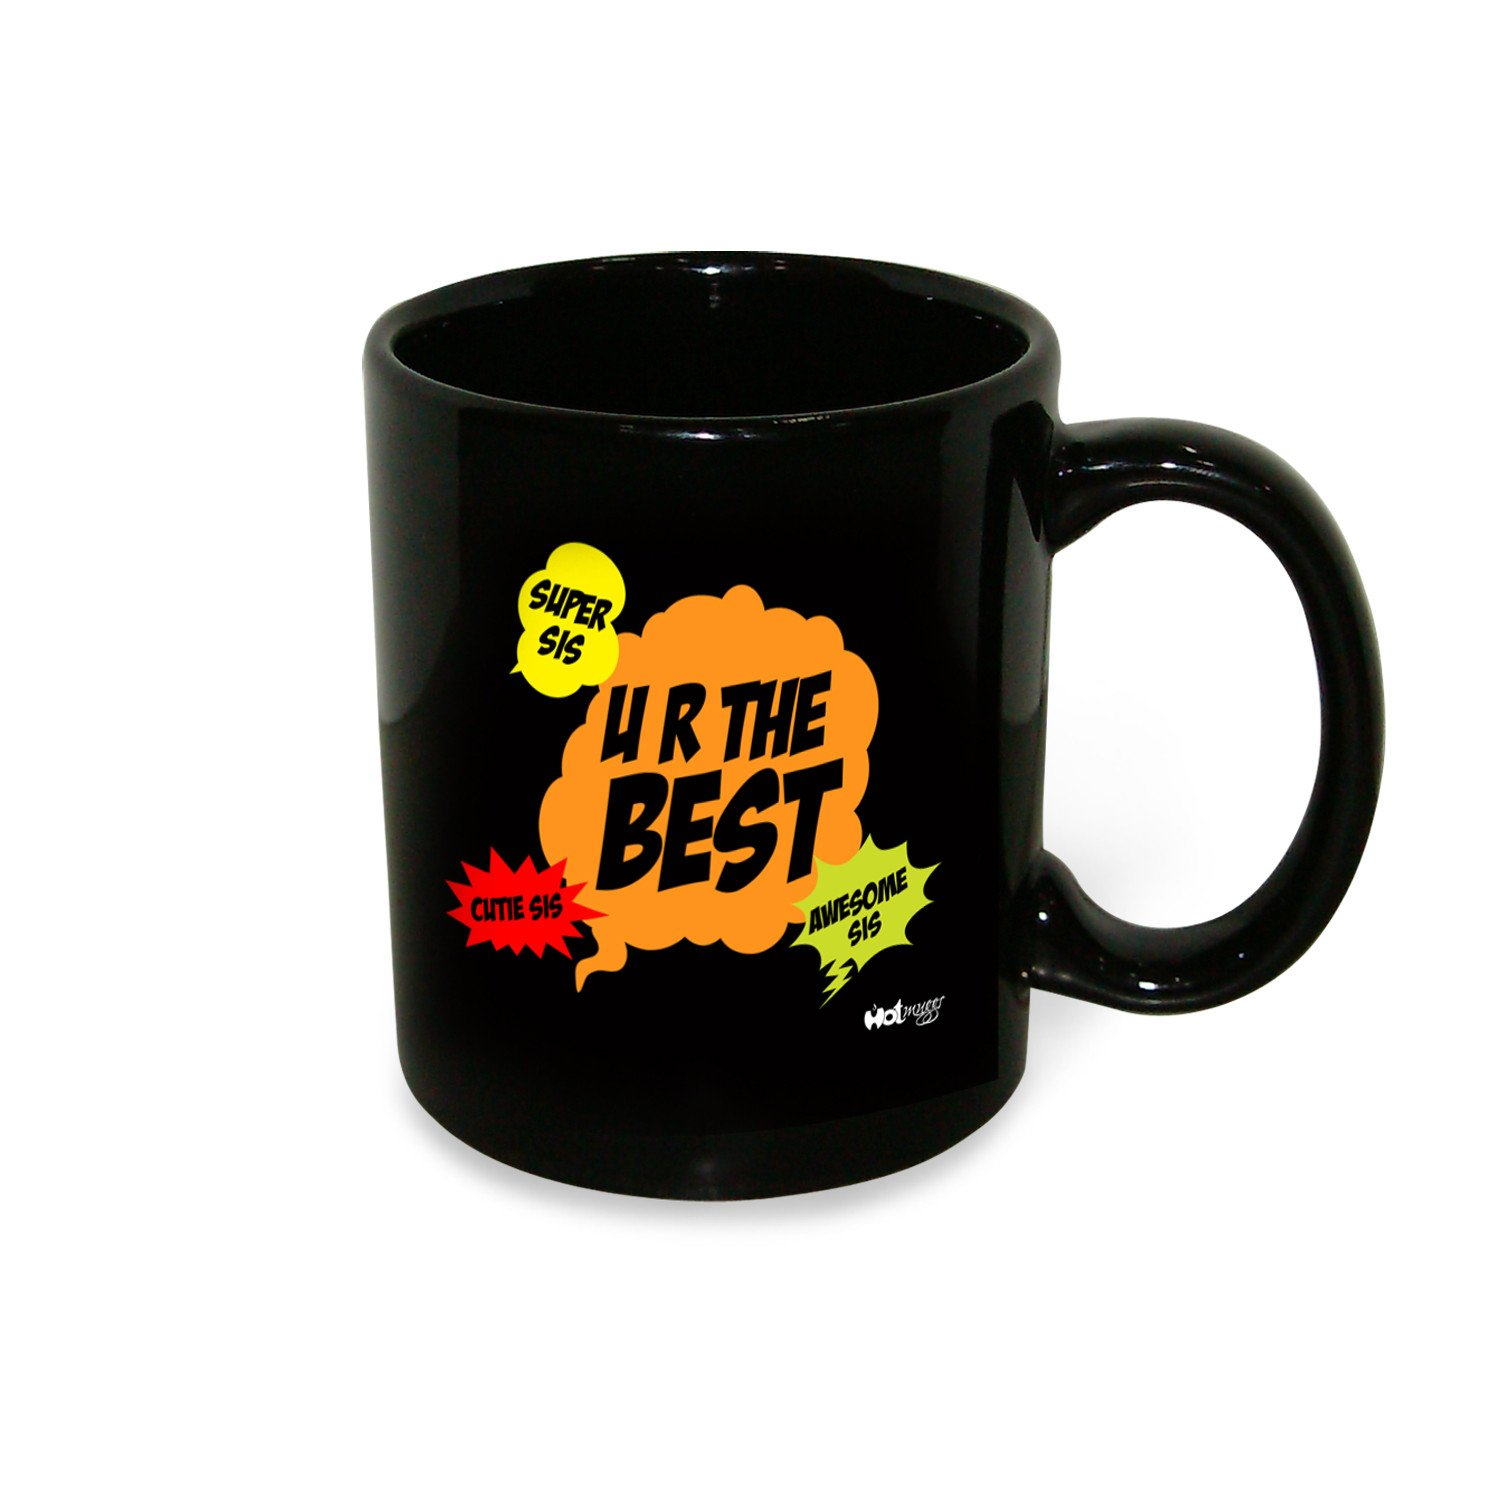 Hot Muggs Lil Sis Mug ml, 1 Pc Ceramic Coffee Mugs in Inside Black With Color Outside Colour by HotMuggs